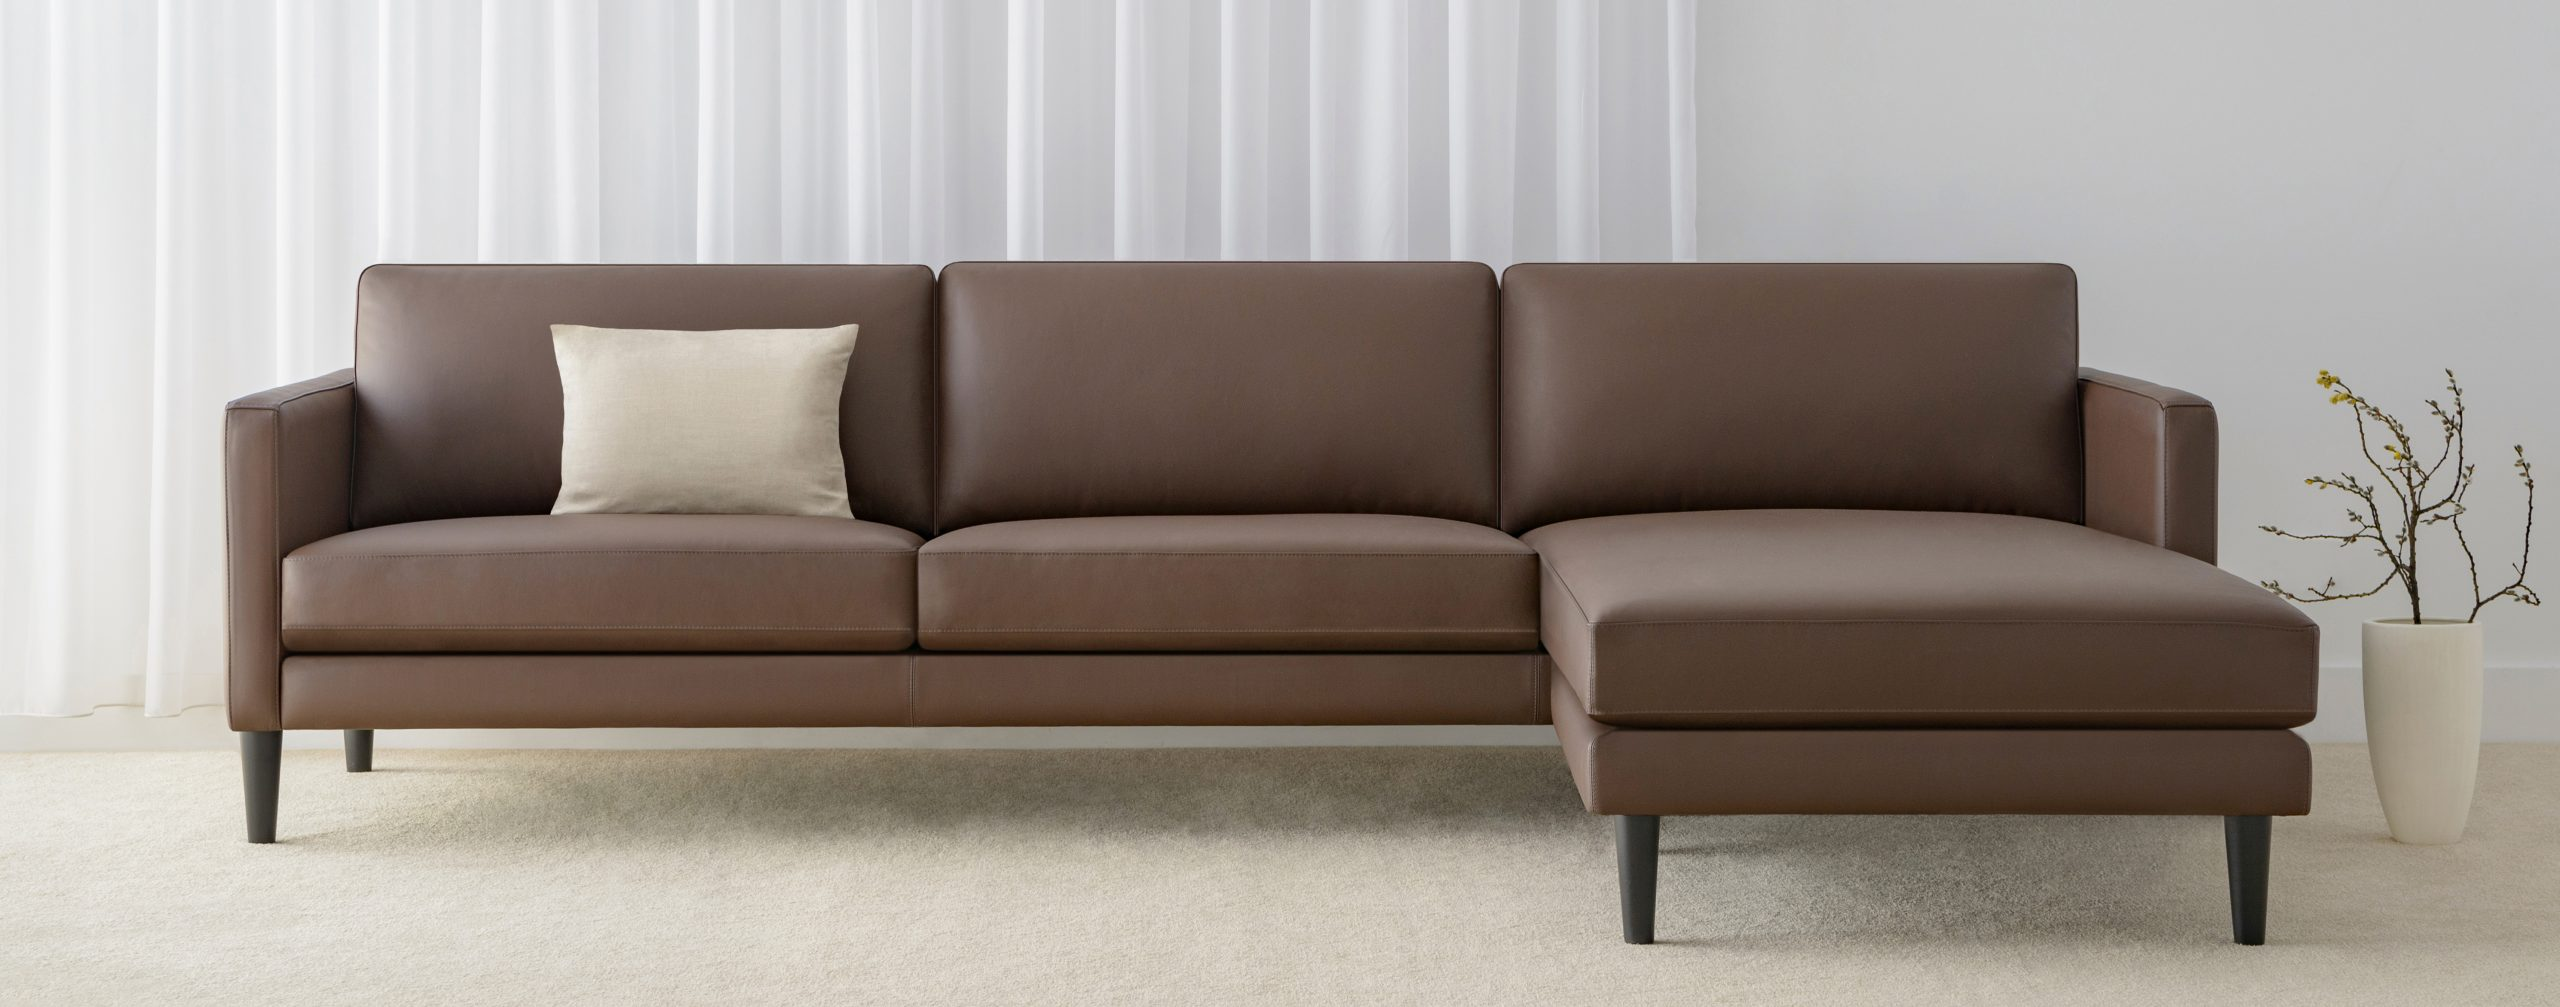 leather modular lounge with chaise made in Adelaide